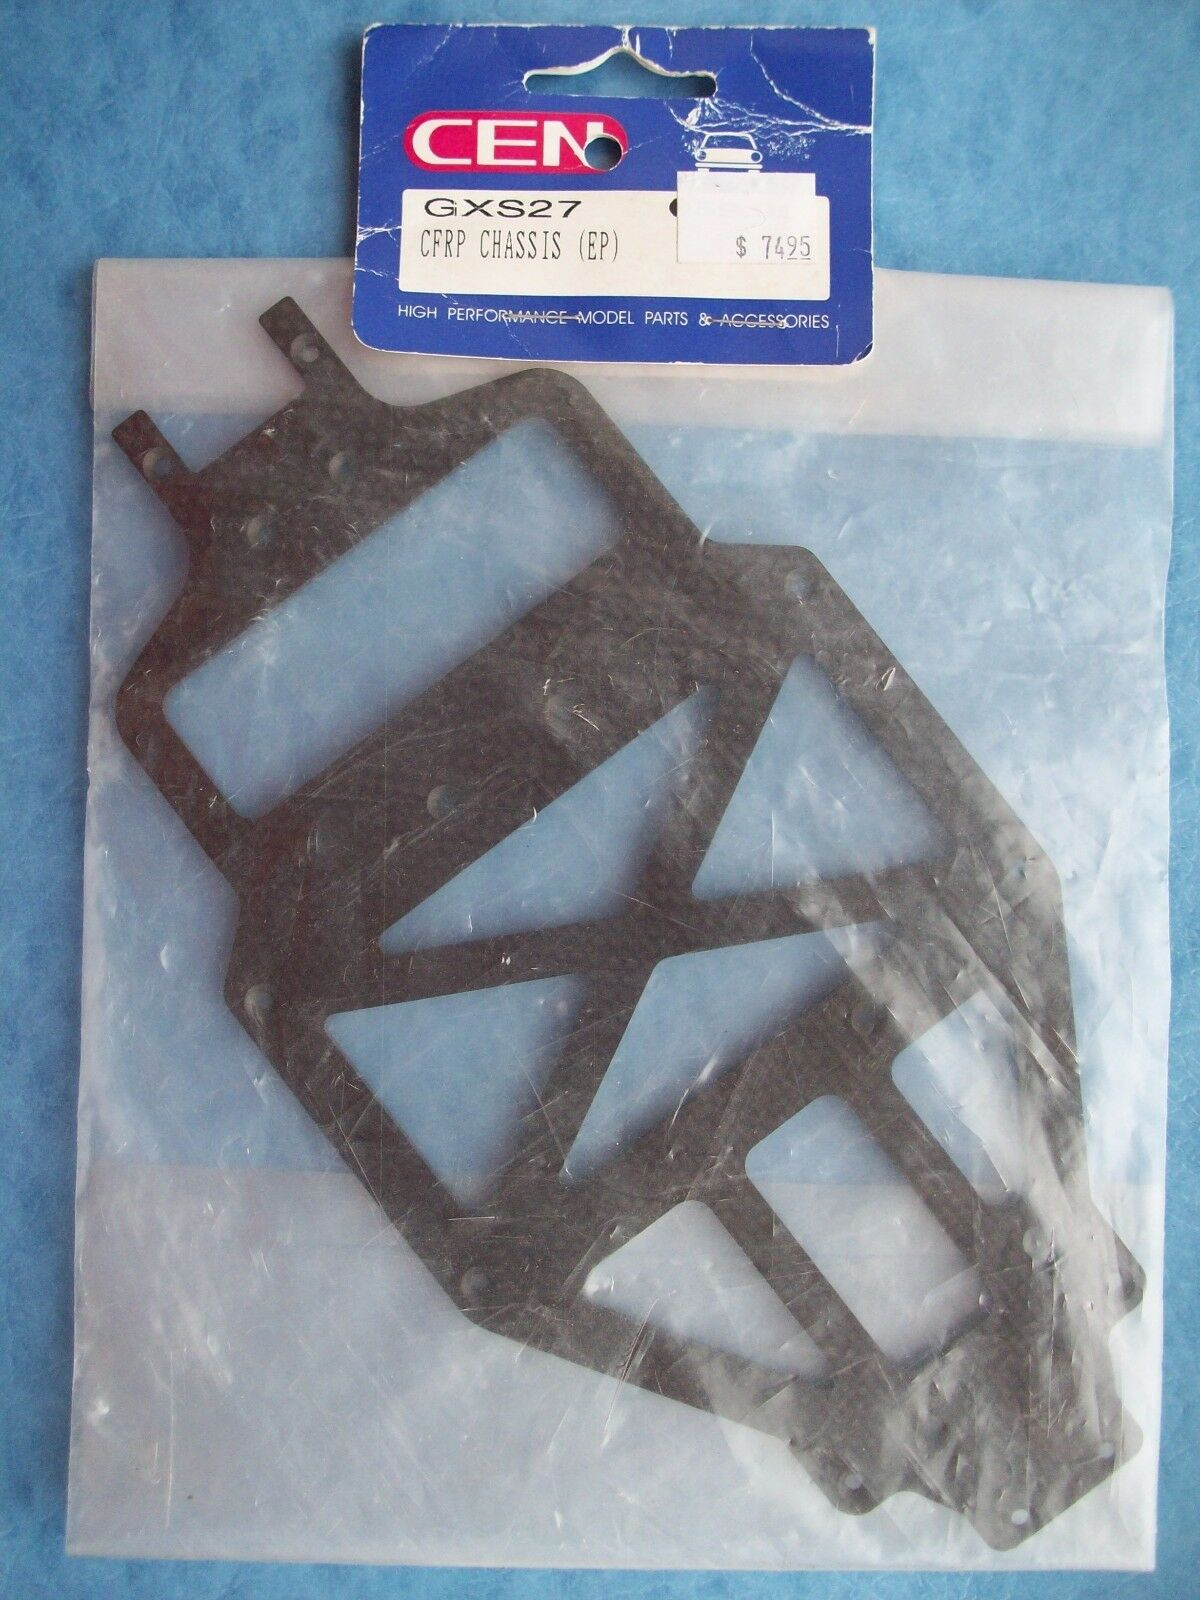 VINTAGE CEN 27 VERY RARE CFRP CHASSIS EP GXS27 NIP